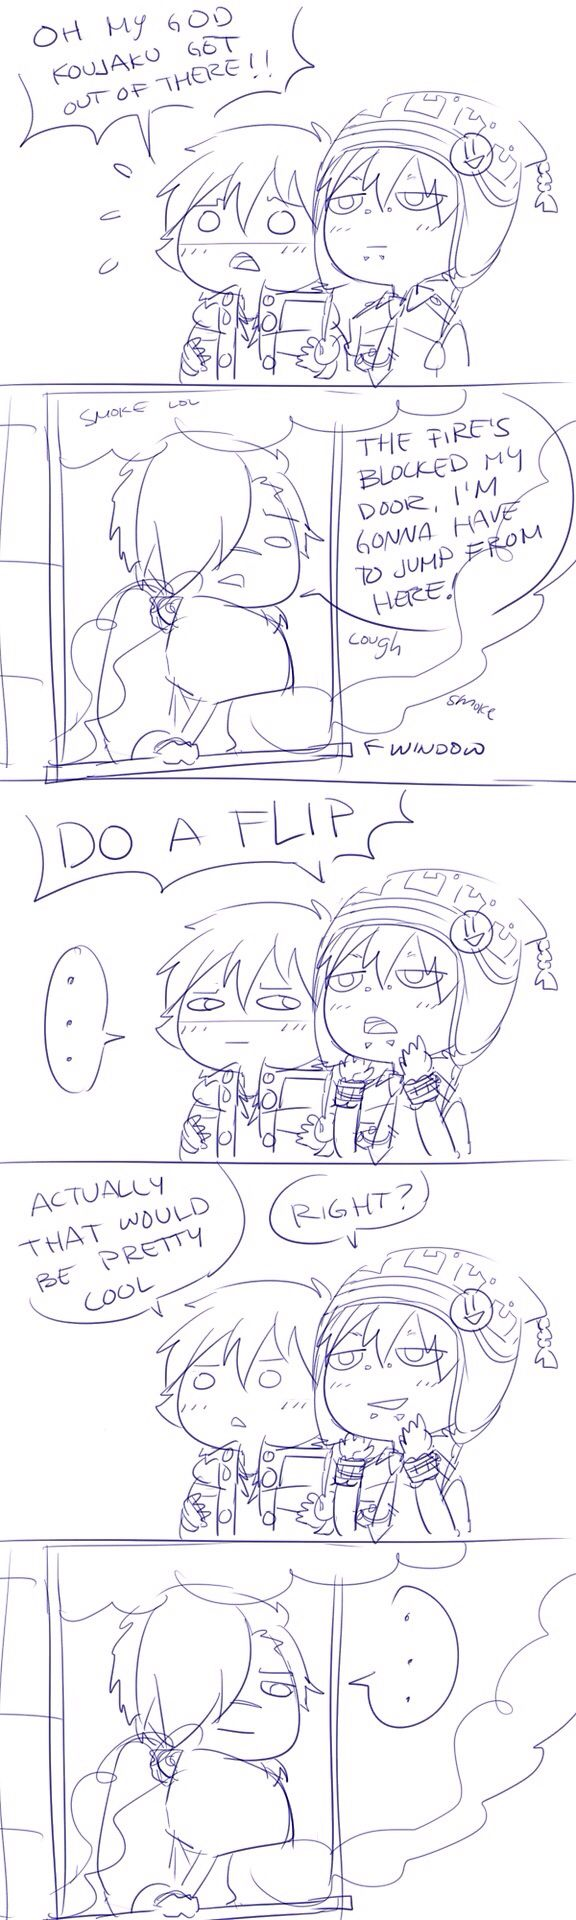 Dmmd - xD   Noiz I love you but . . . XD your a dick son